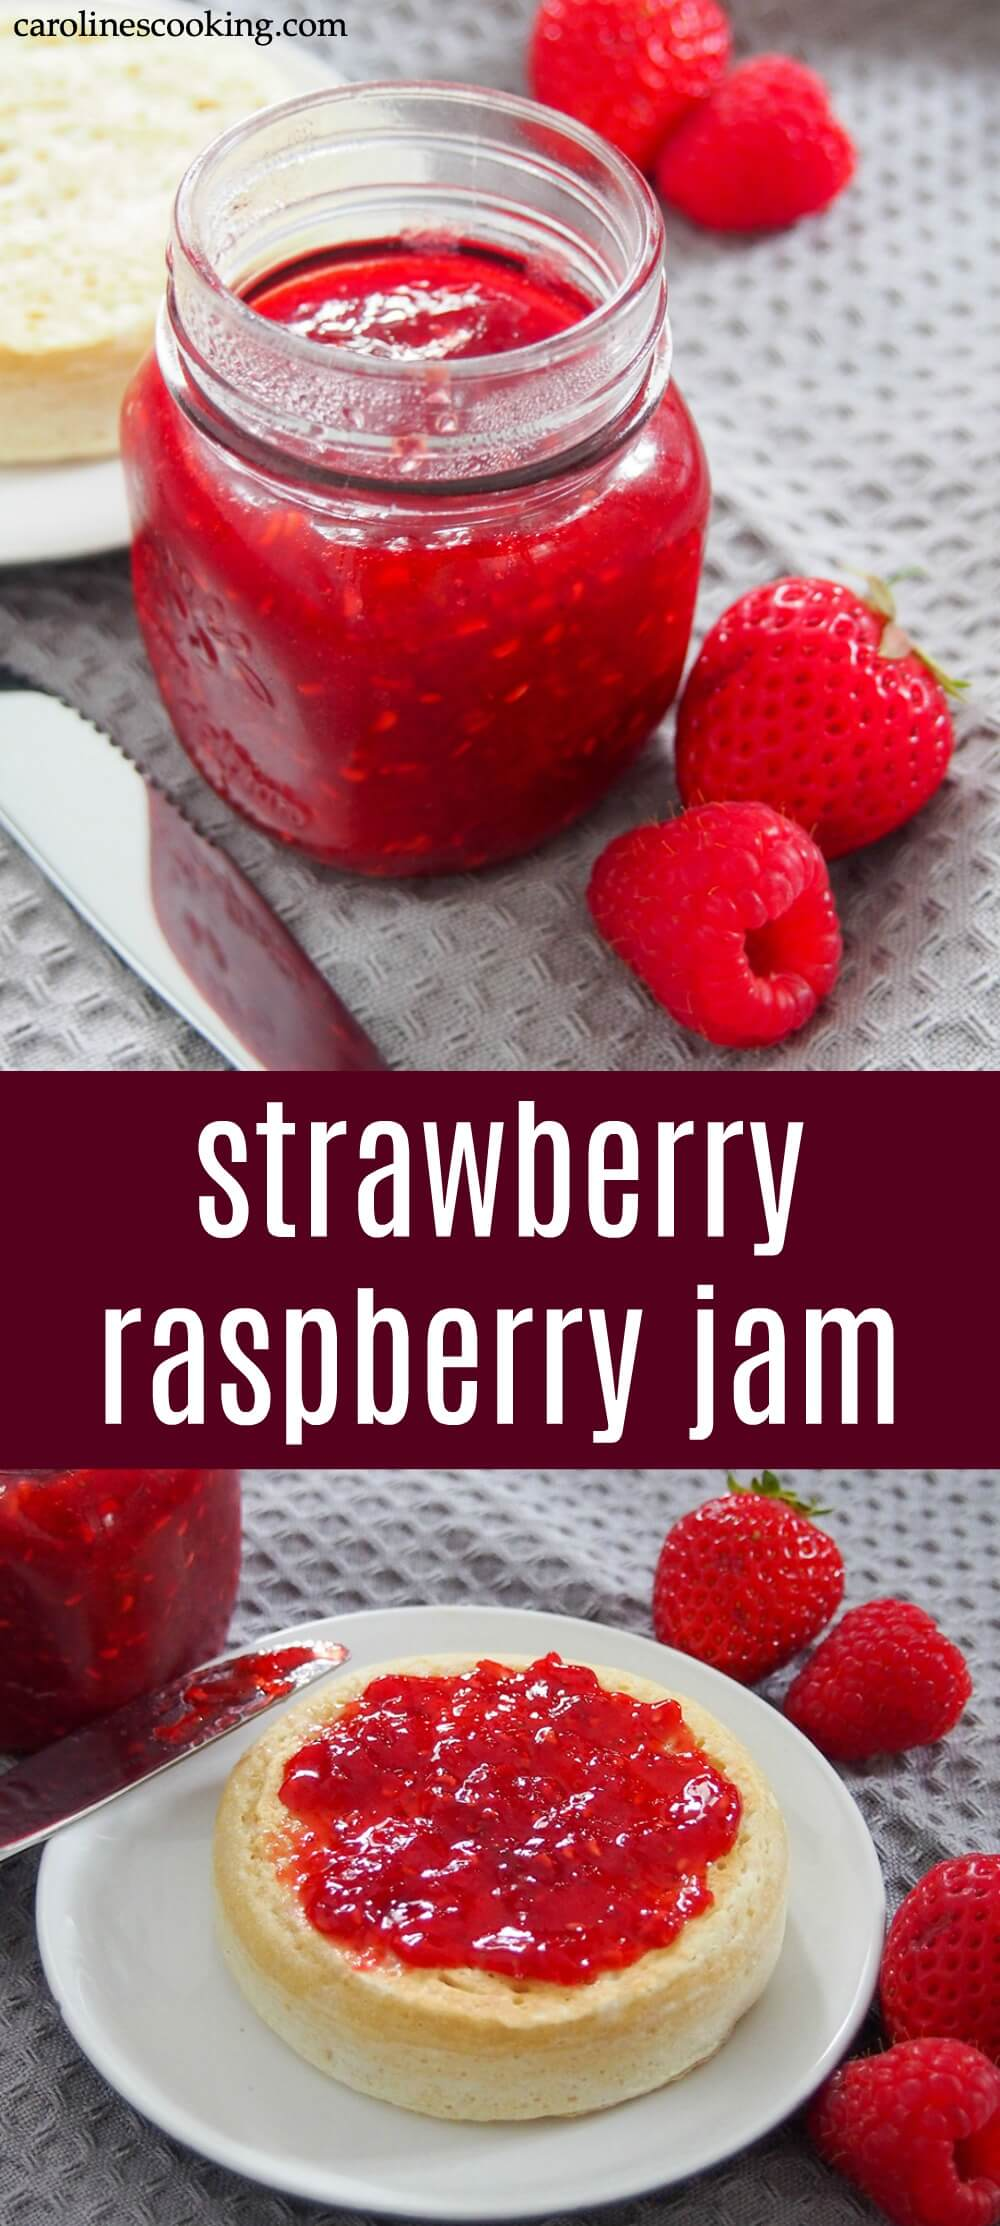 This strawberry raspberry jam is a delicious combination of summer berries in a sweet, bright spread. This recipe makes a small batch in no time that's perfect to top your toast and more. #jam #homemadejam #strawberry #raspberry #smallbatchjam